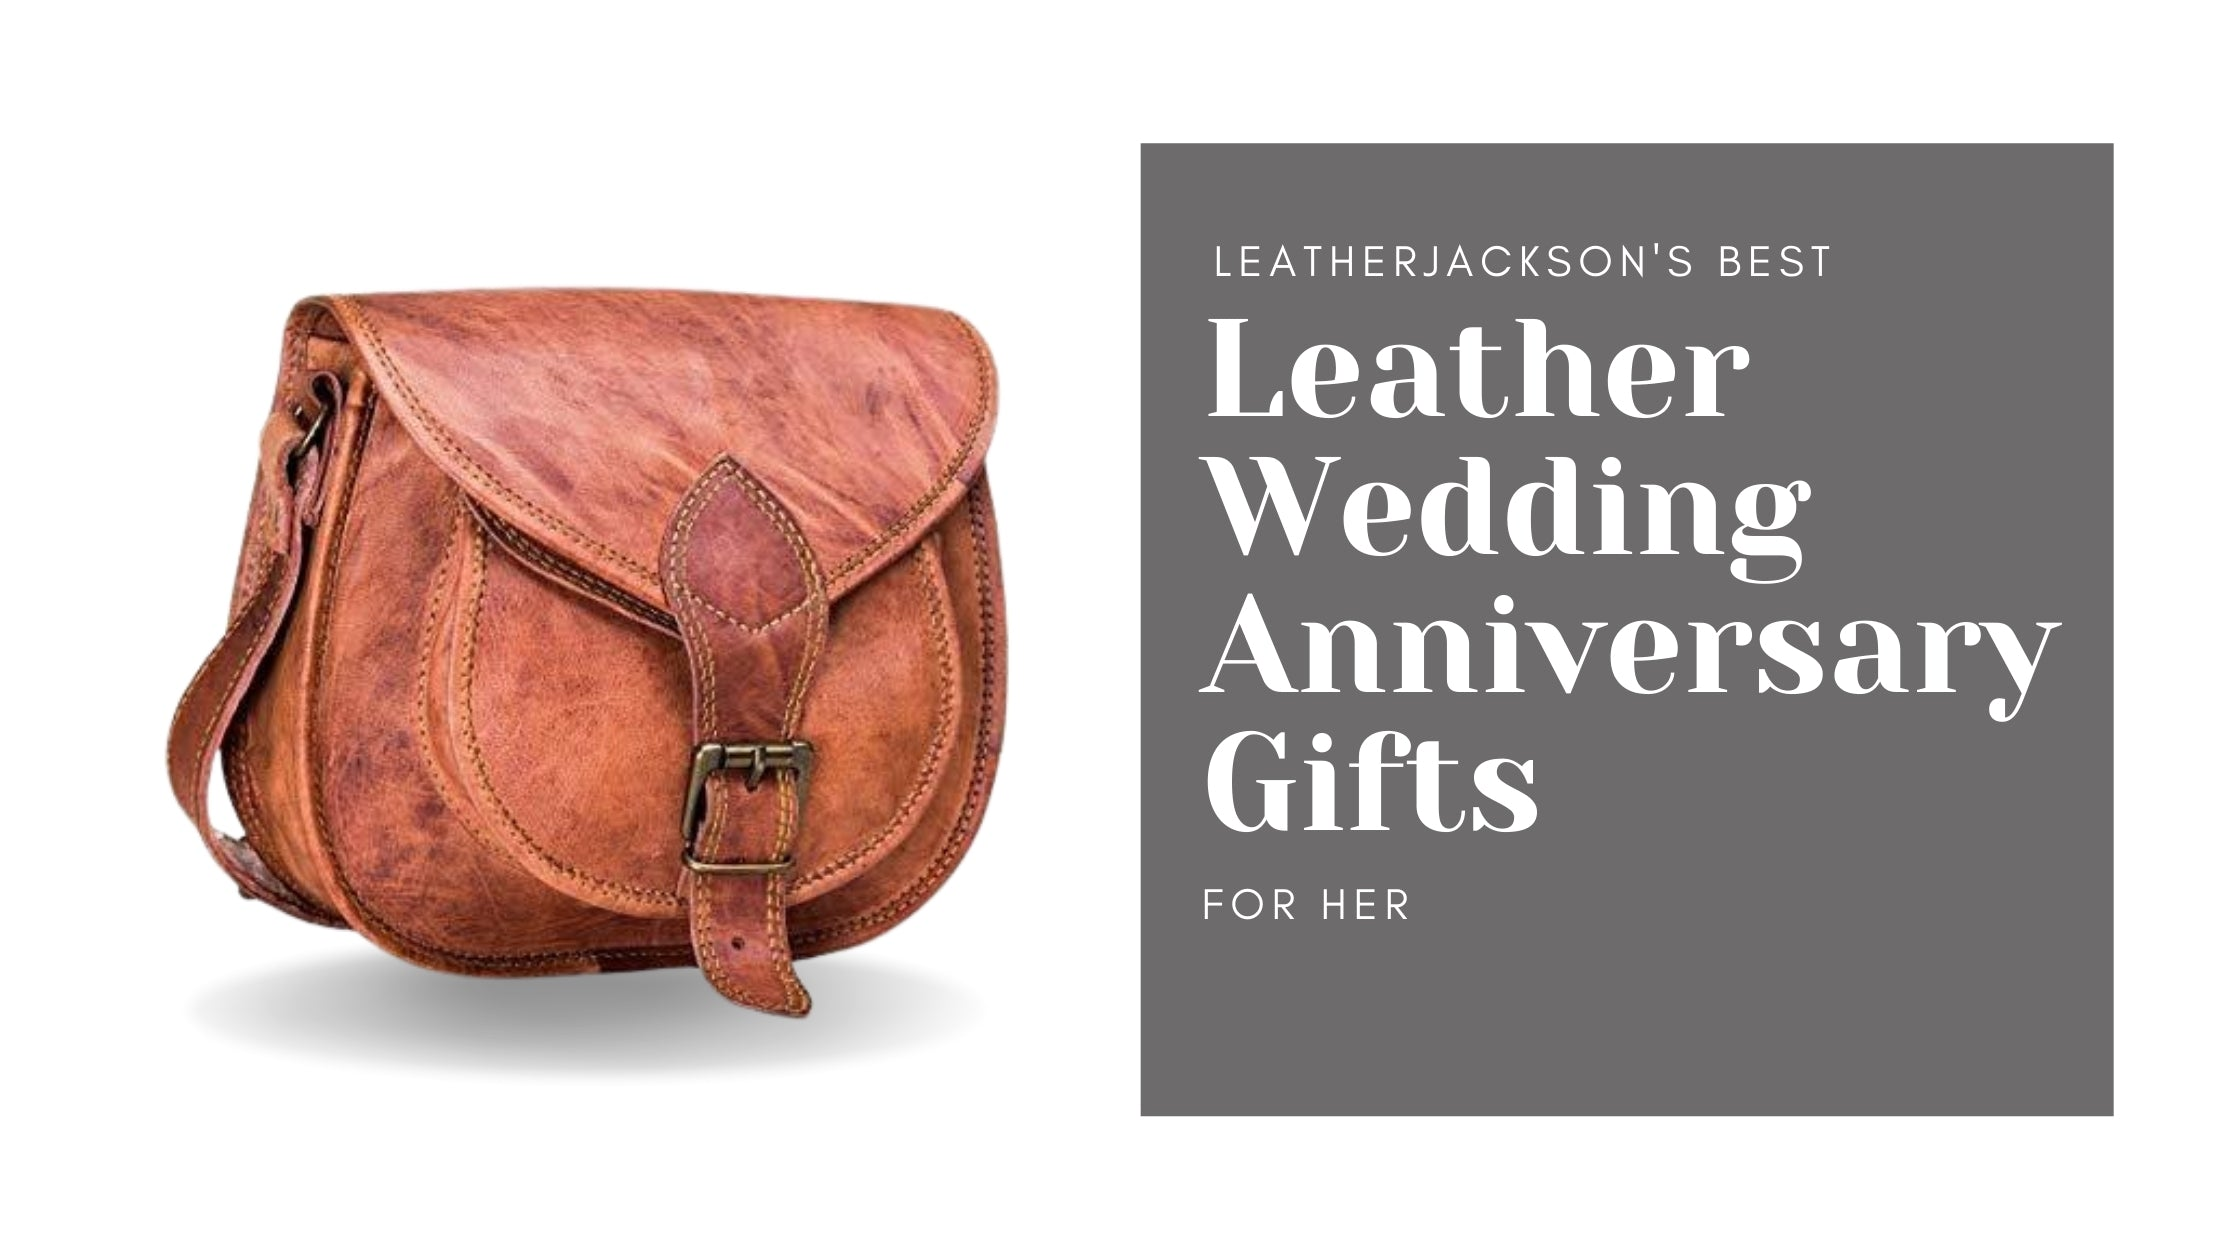 best leather wedding anniversary gifts for her